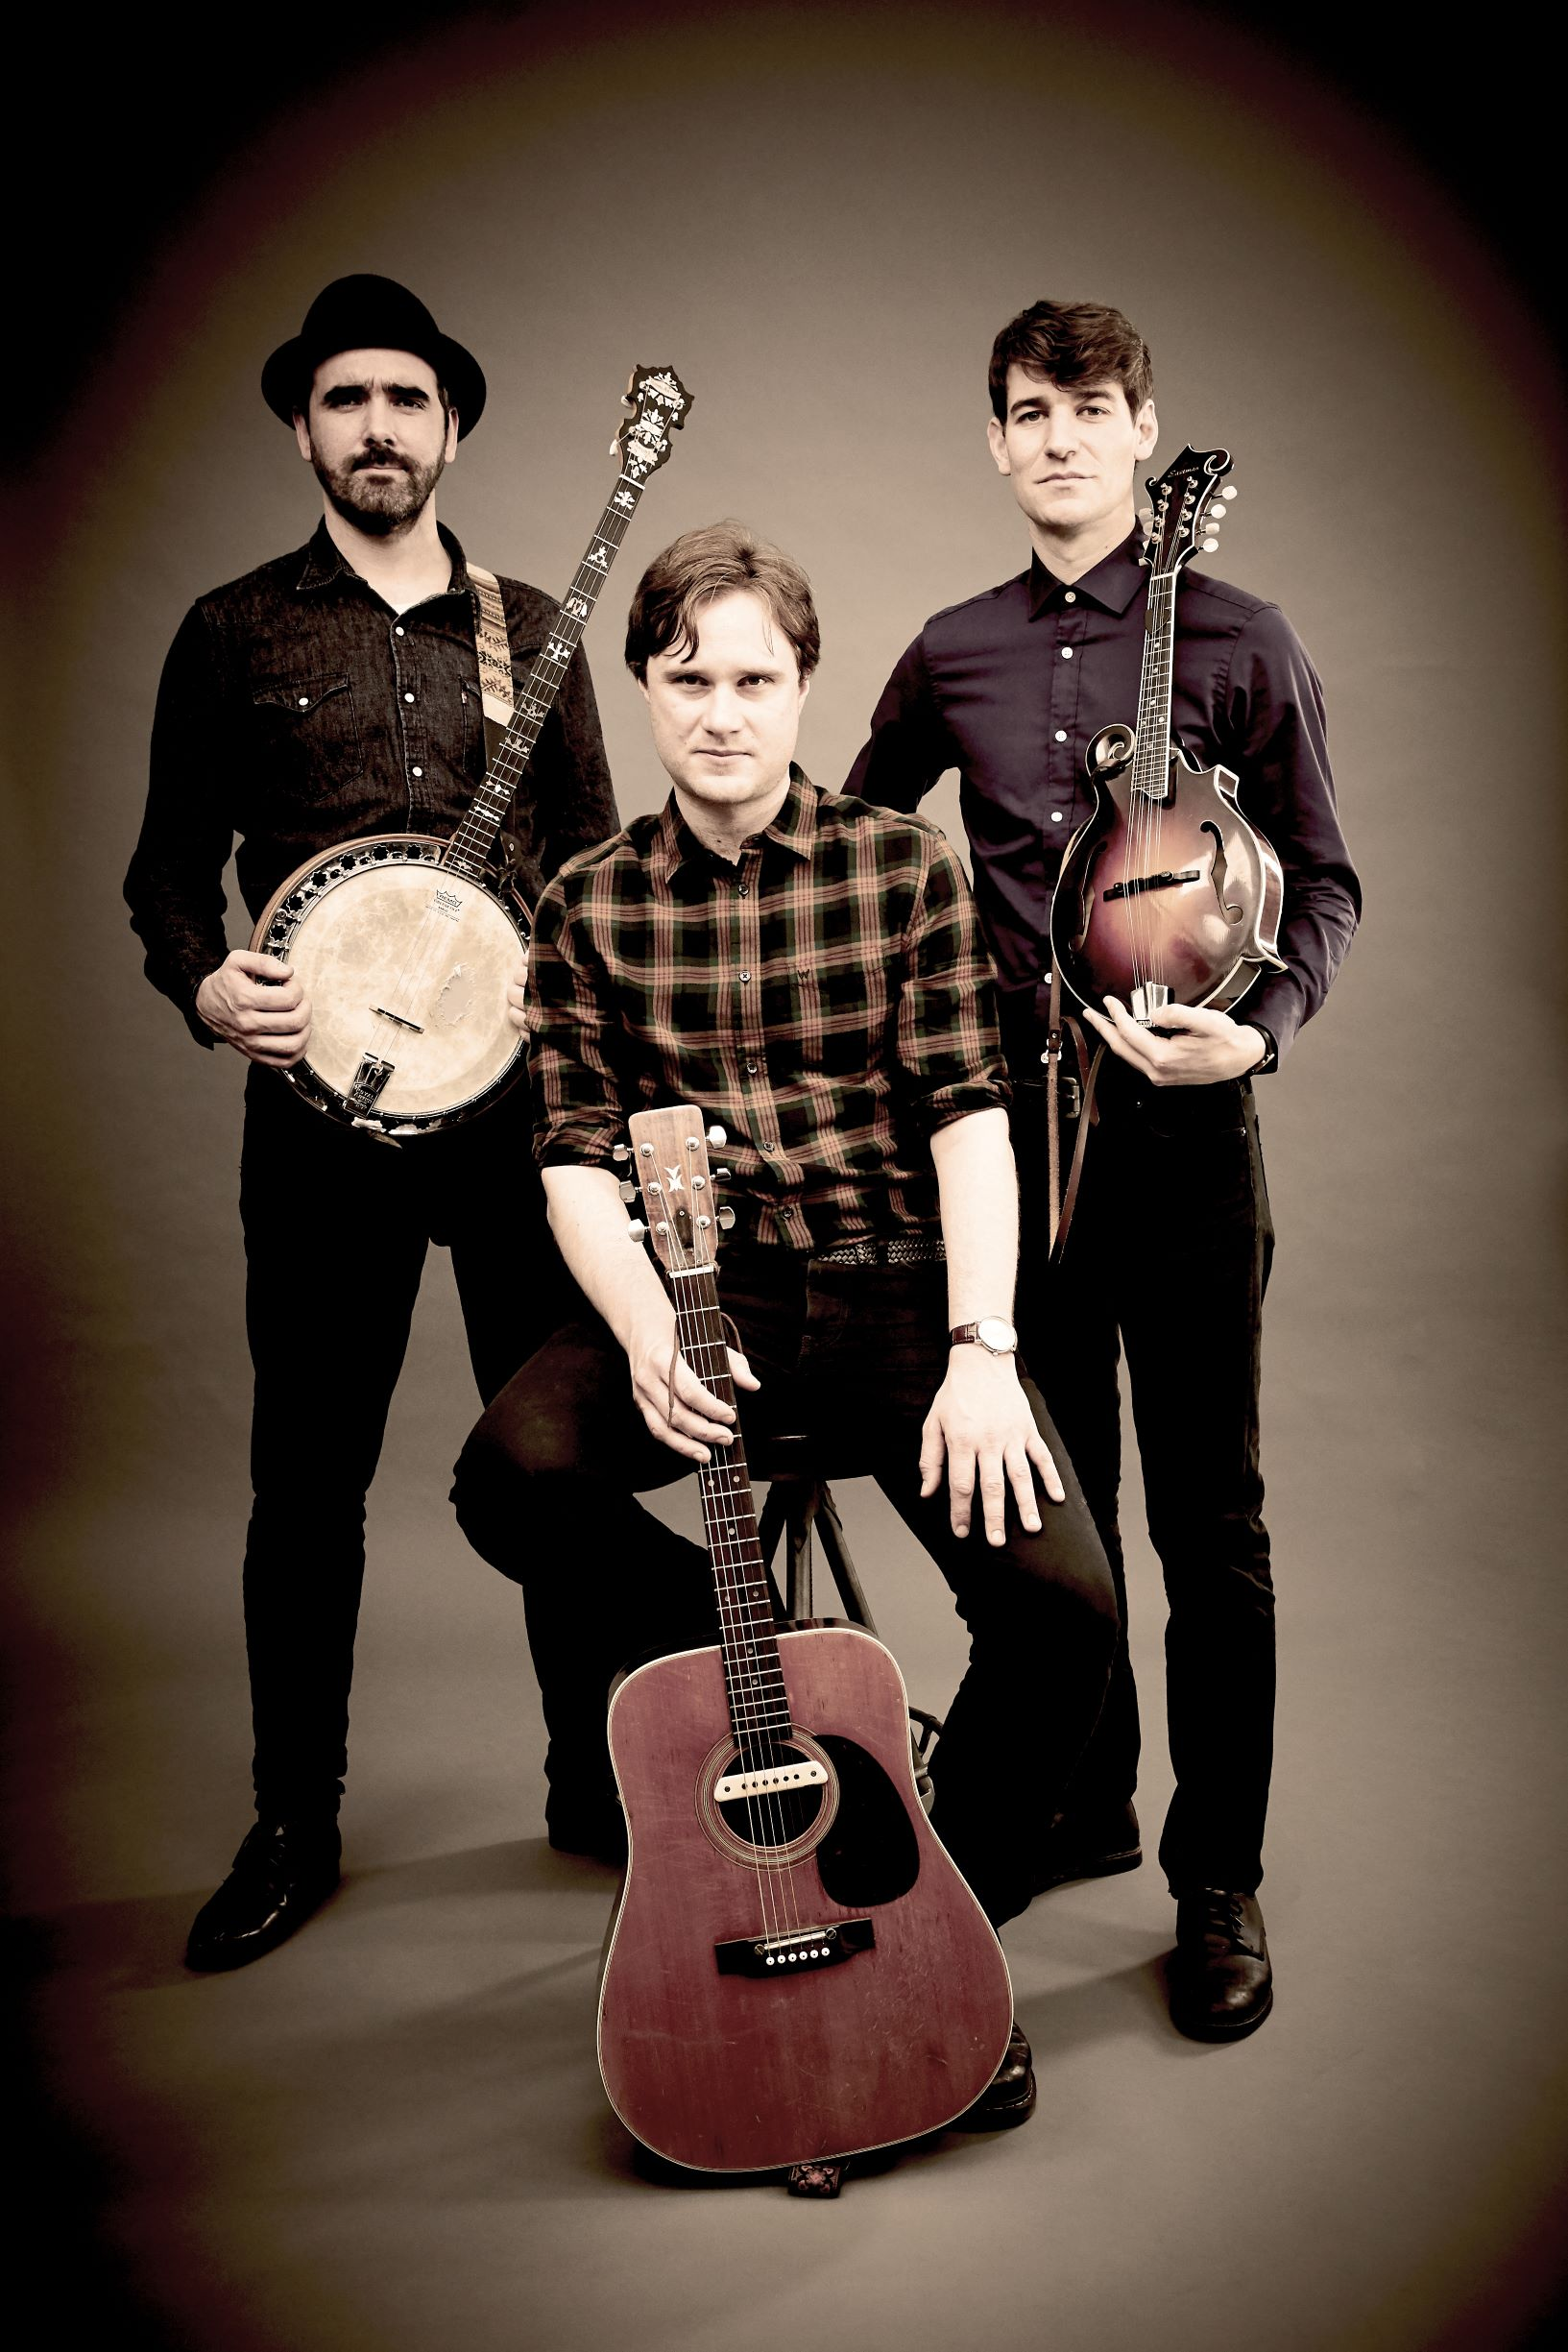 THE THUMPING TOMMYS - FOLK / BLUEGRASS / AMERICANADOOR 7PM / MUSIC 8.30PM£10 / £9 / £0 (BK)EMAIL TO RESERVE